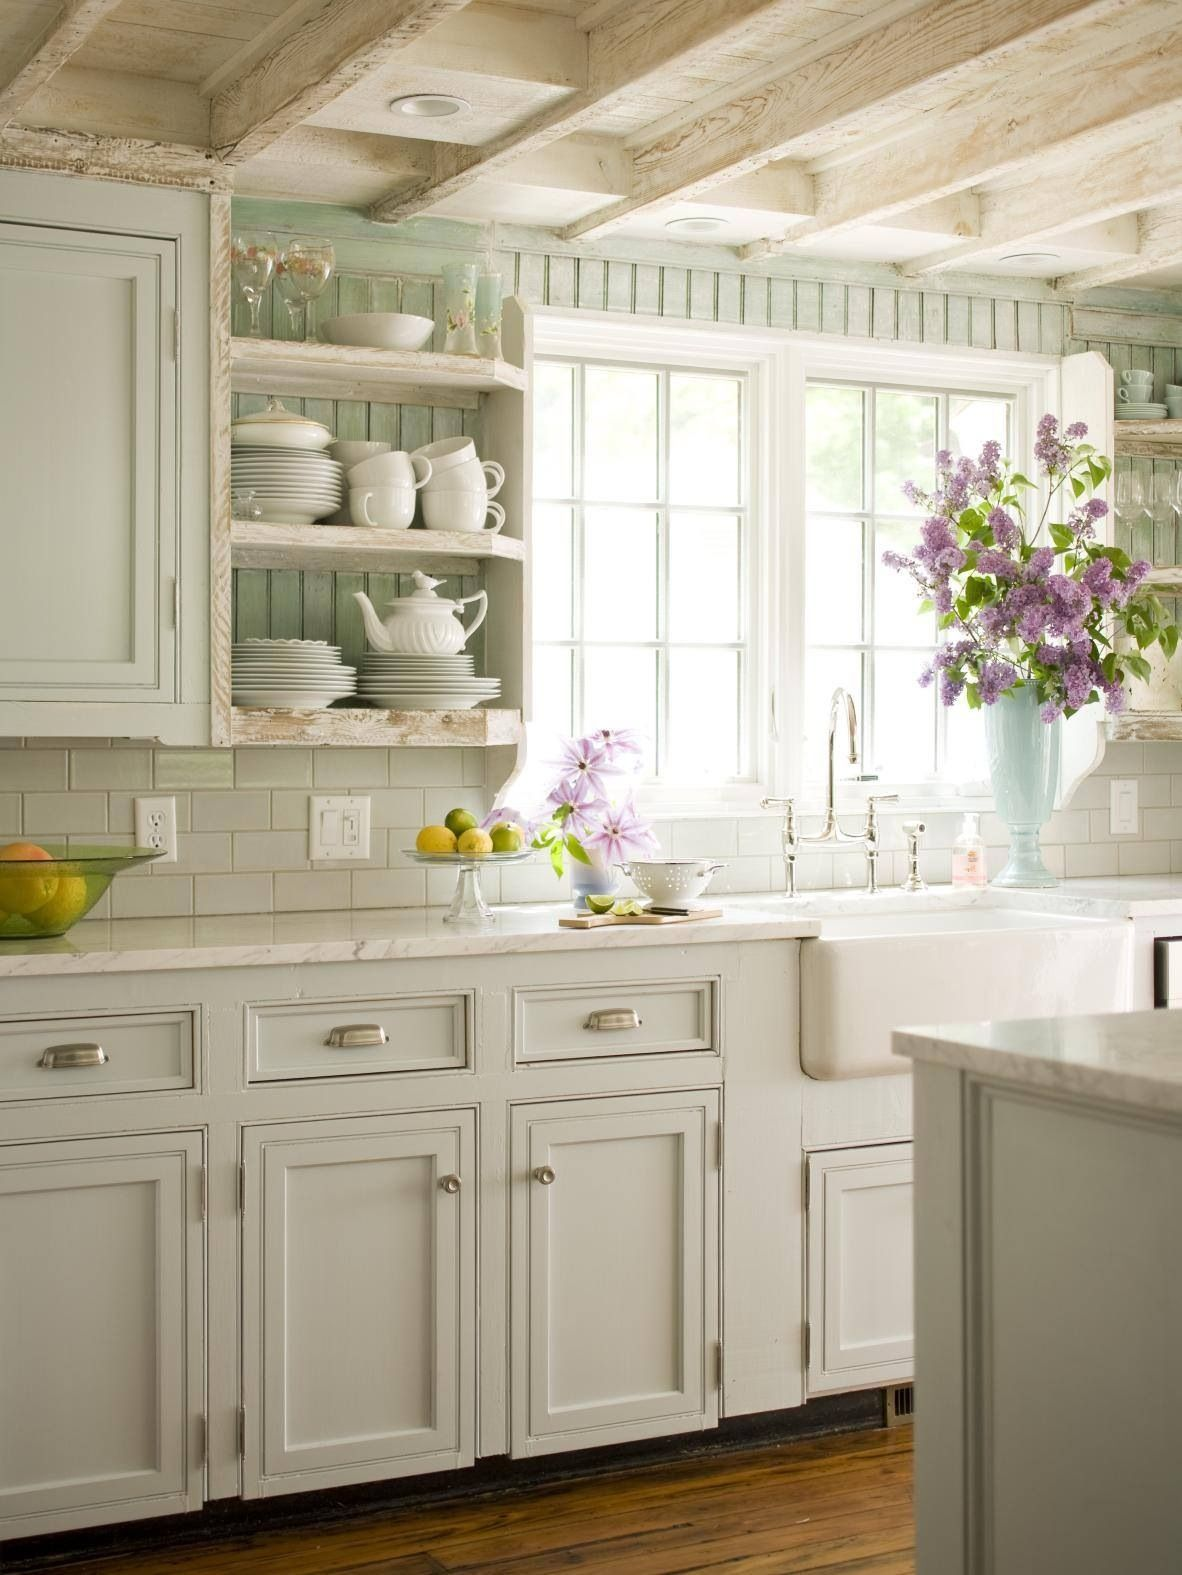 White Wooden Kitchen Cabinet with Storage in French Country Style ...